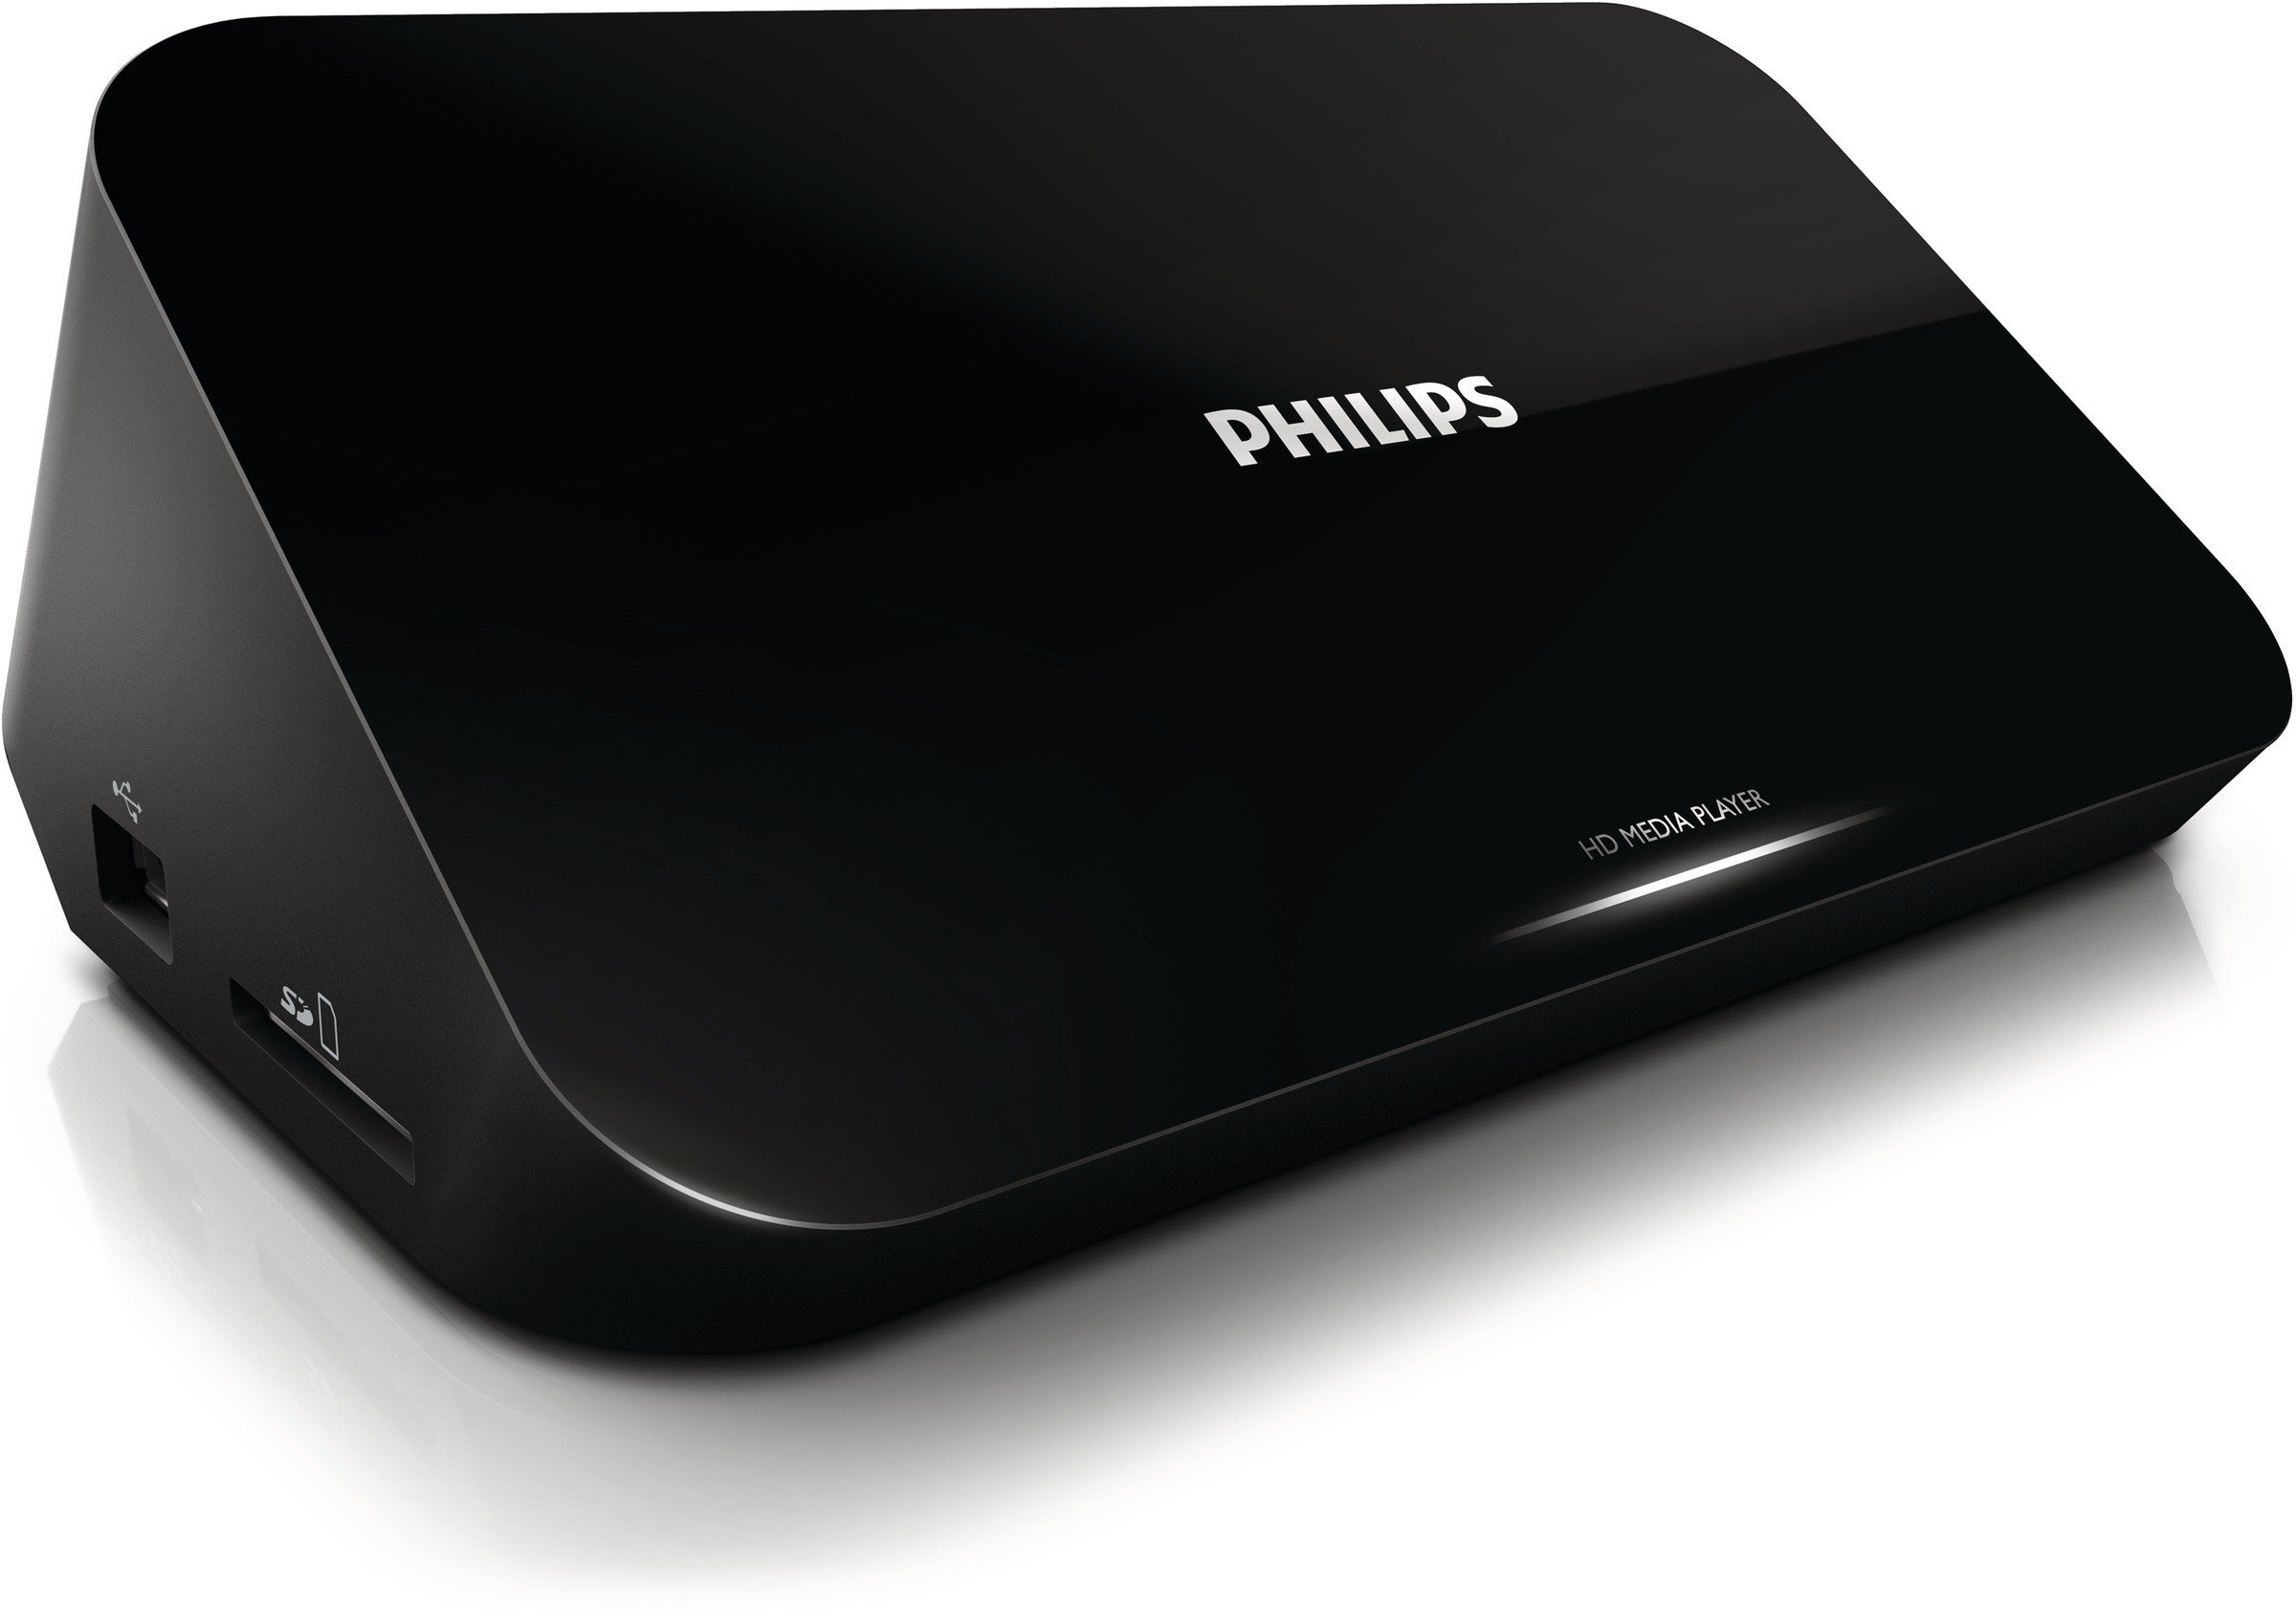 PHILIPS-HMP500012-1